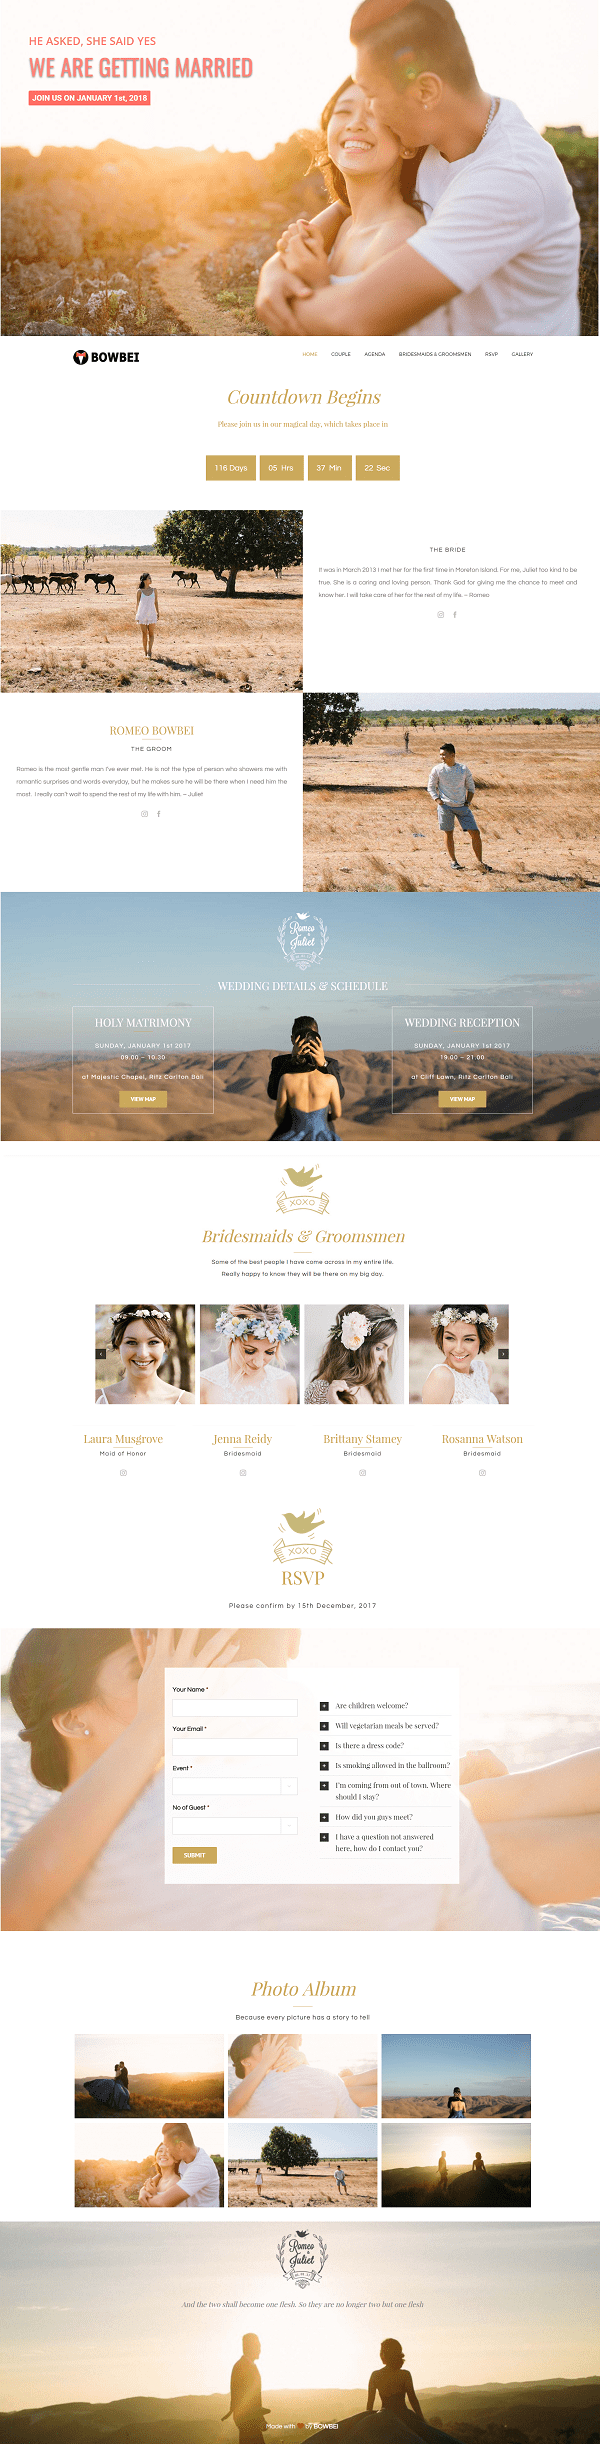 Bowbei Wedding Website Theme